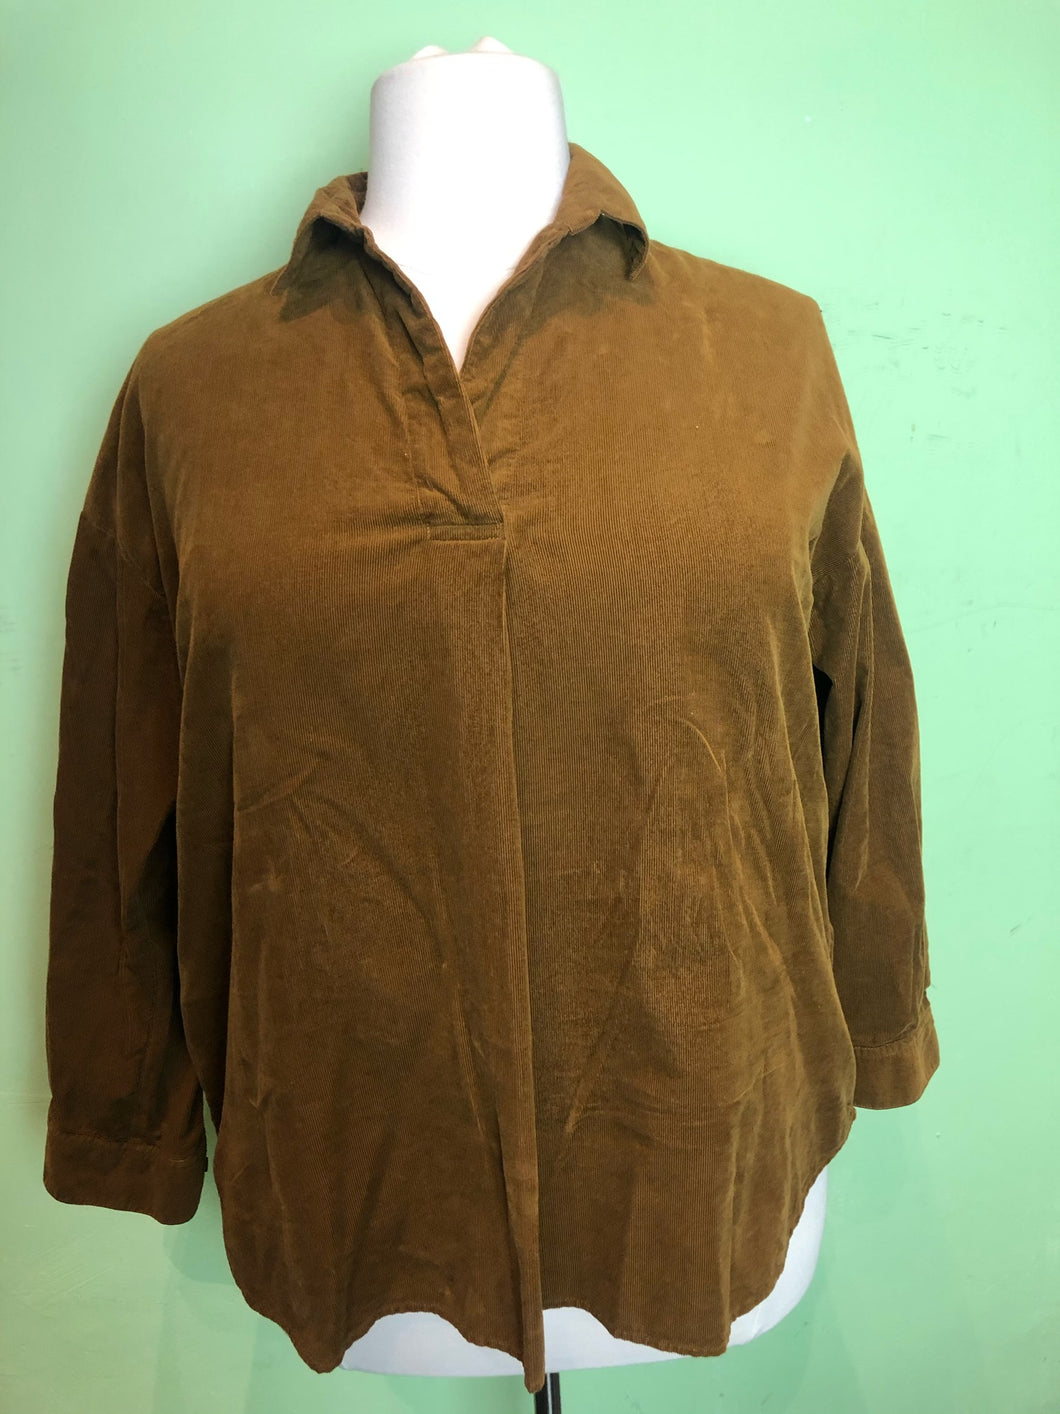 Tawny Brown Corduroy Long Sleeve Top by Uniqlo, Size 1X